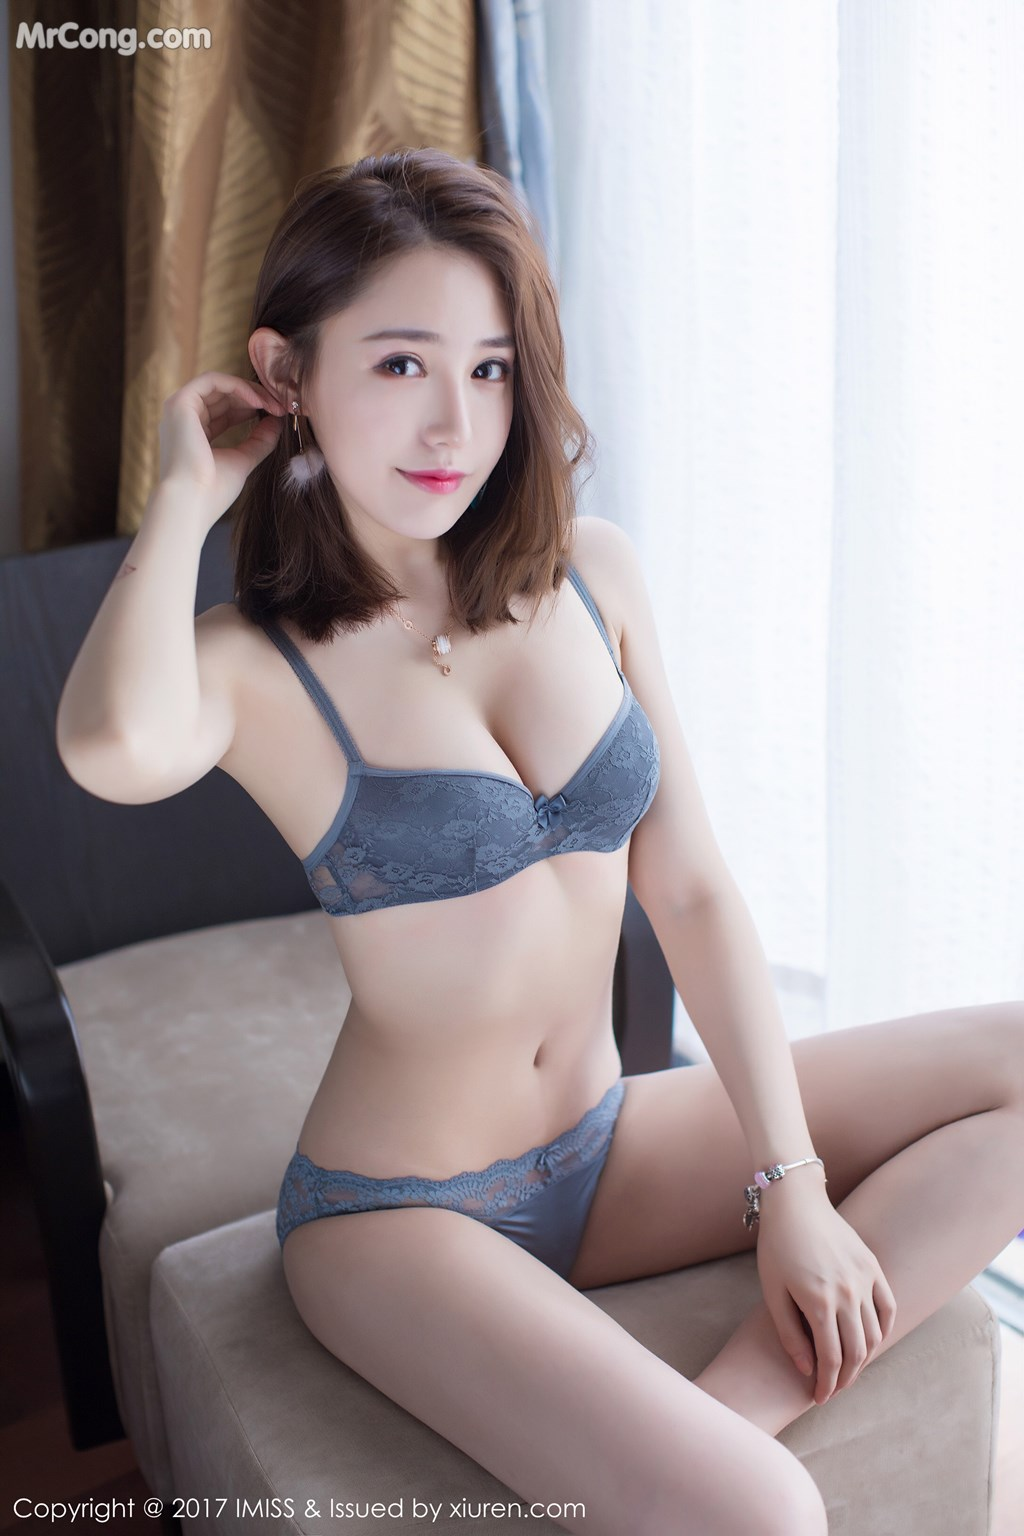 Tron bo anh vong 1 goi cam nhat cang tron hinh anh 8